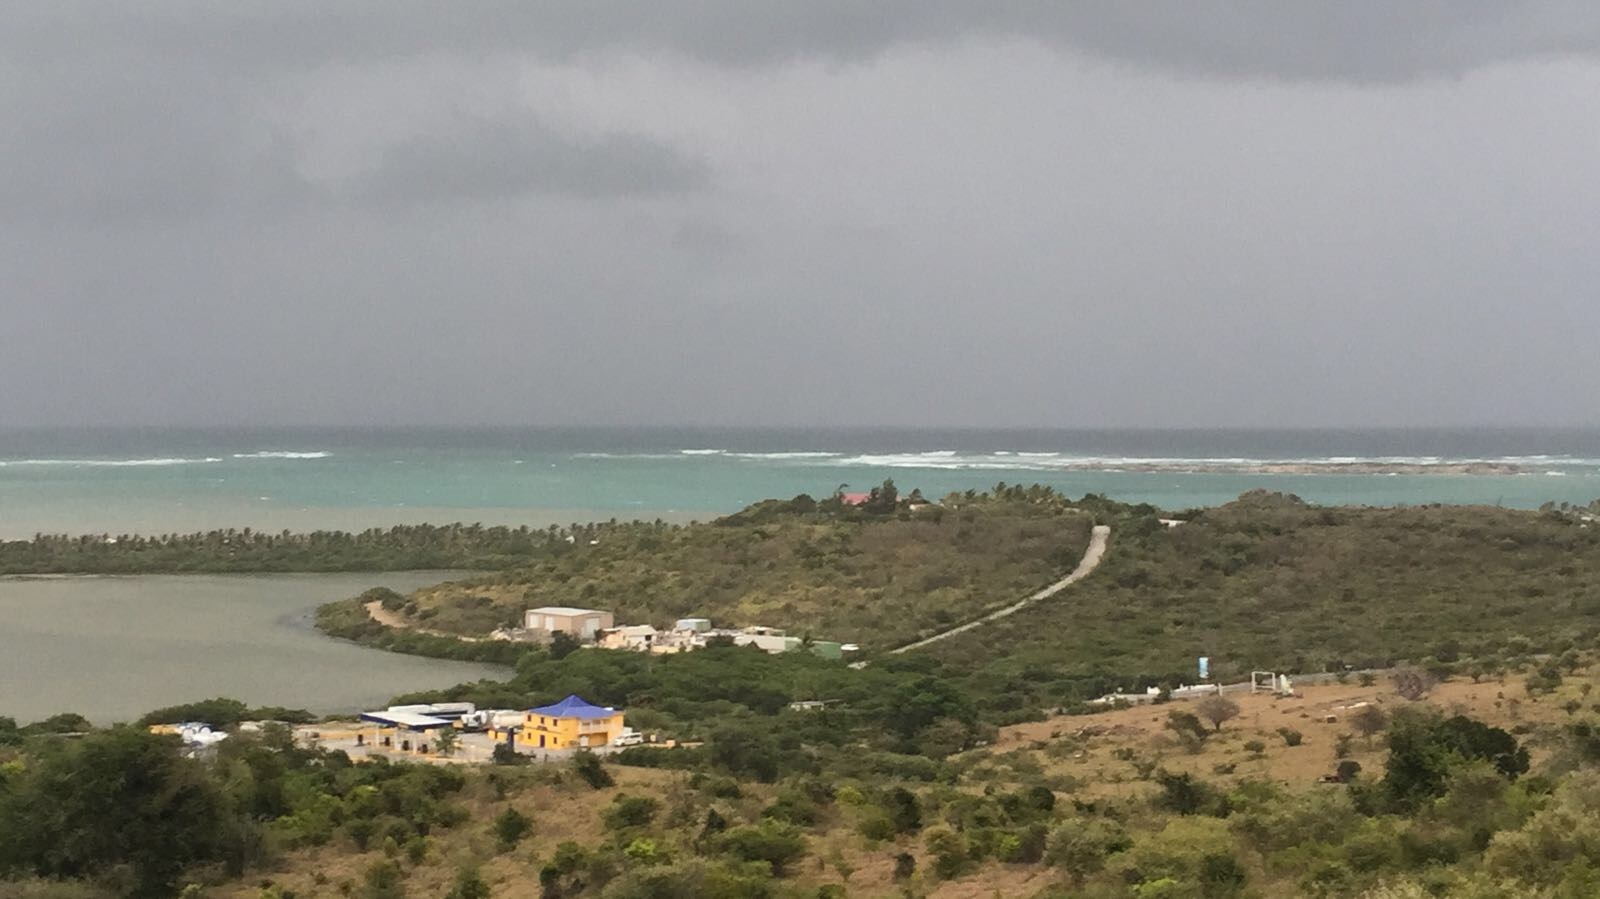 Island of Barbuda 'literally under water' after Hurricane Irma